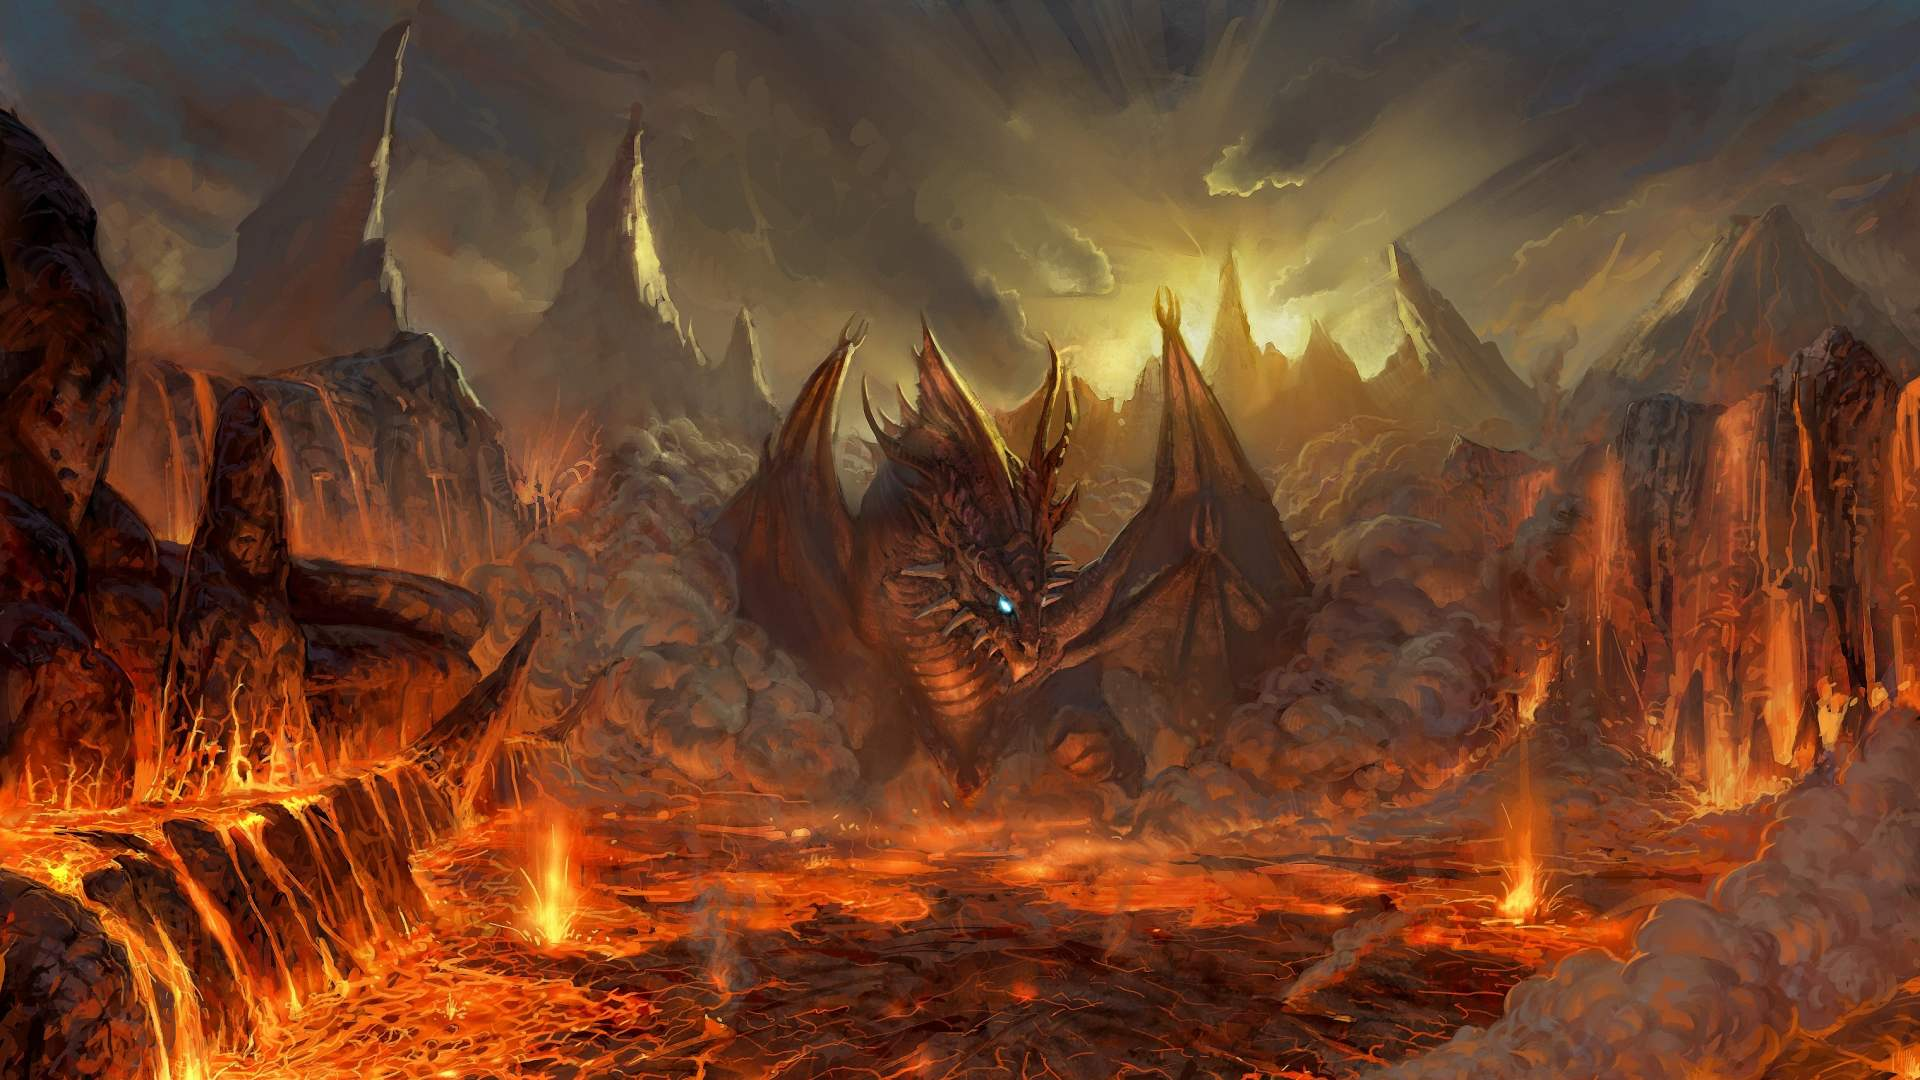 Resolution Fantasy Dragon Fire Wallpaper HD 10   SiWallpaperHD 1120 1920x1080